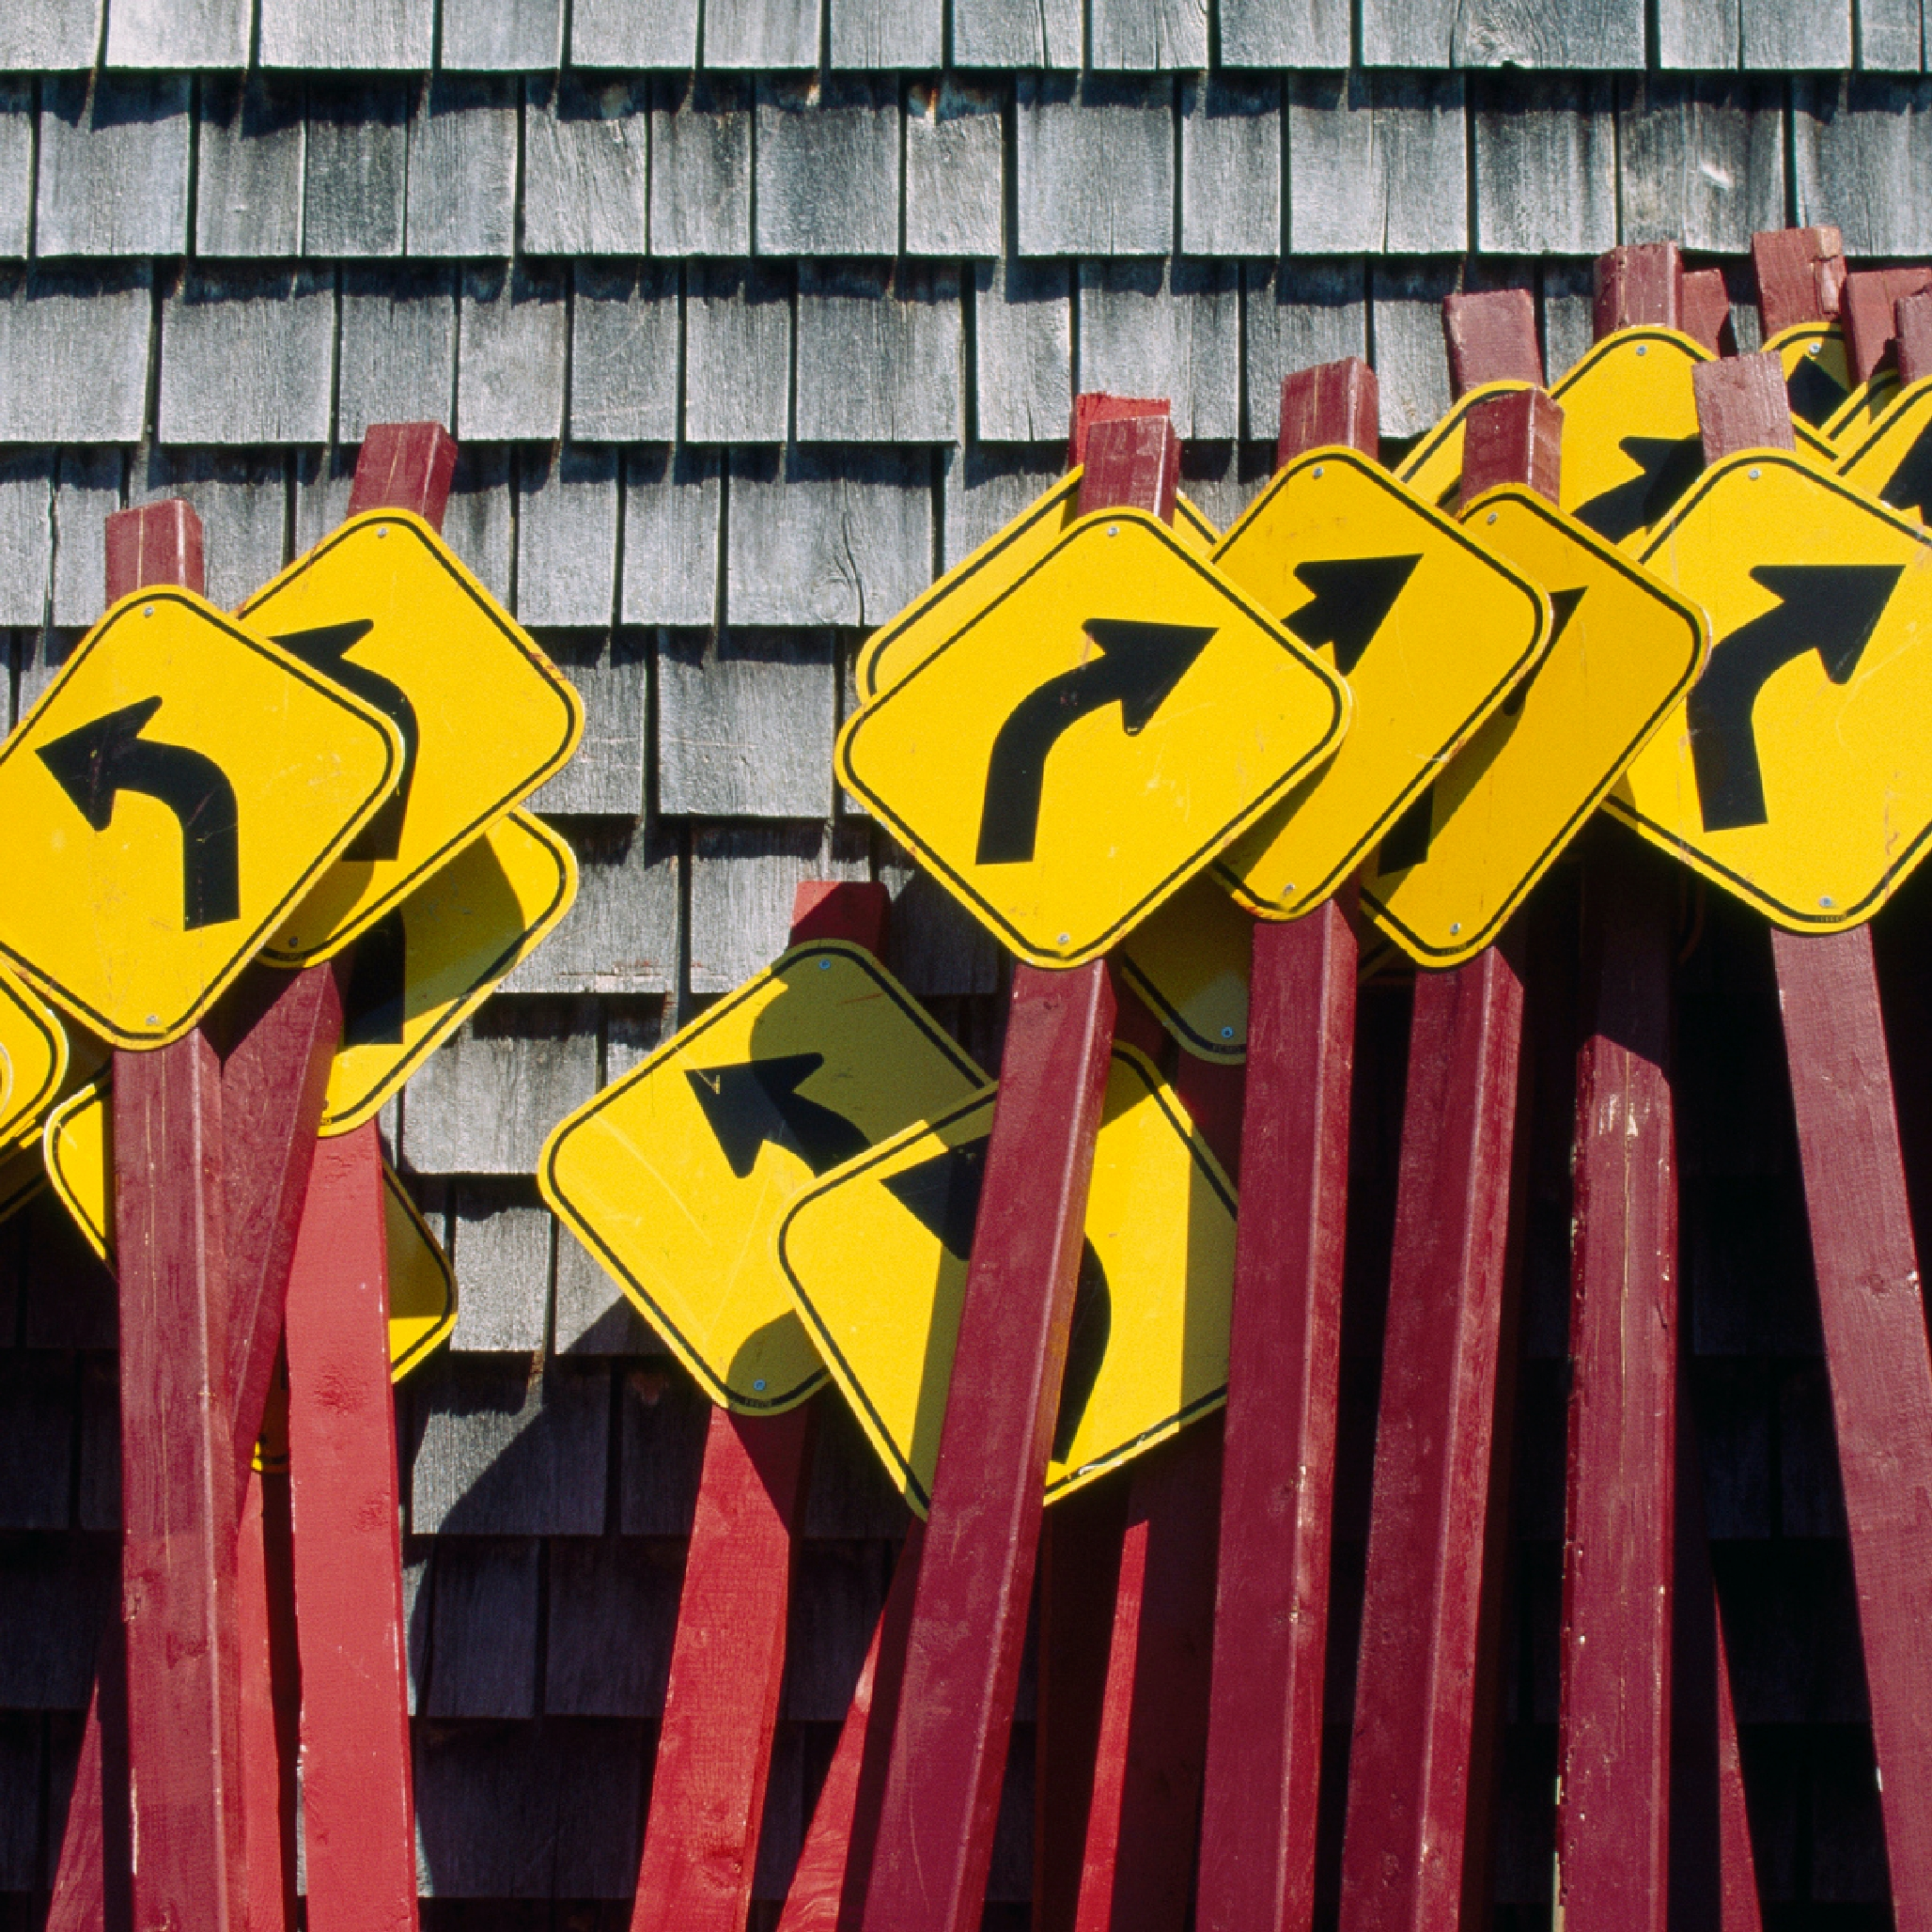 Photo of street signs with arrows pointing in different directions